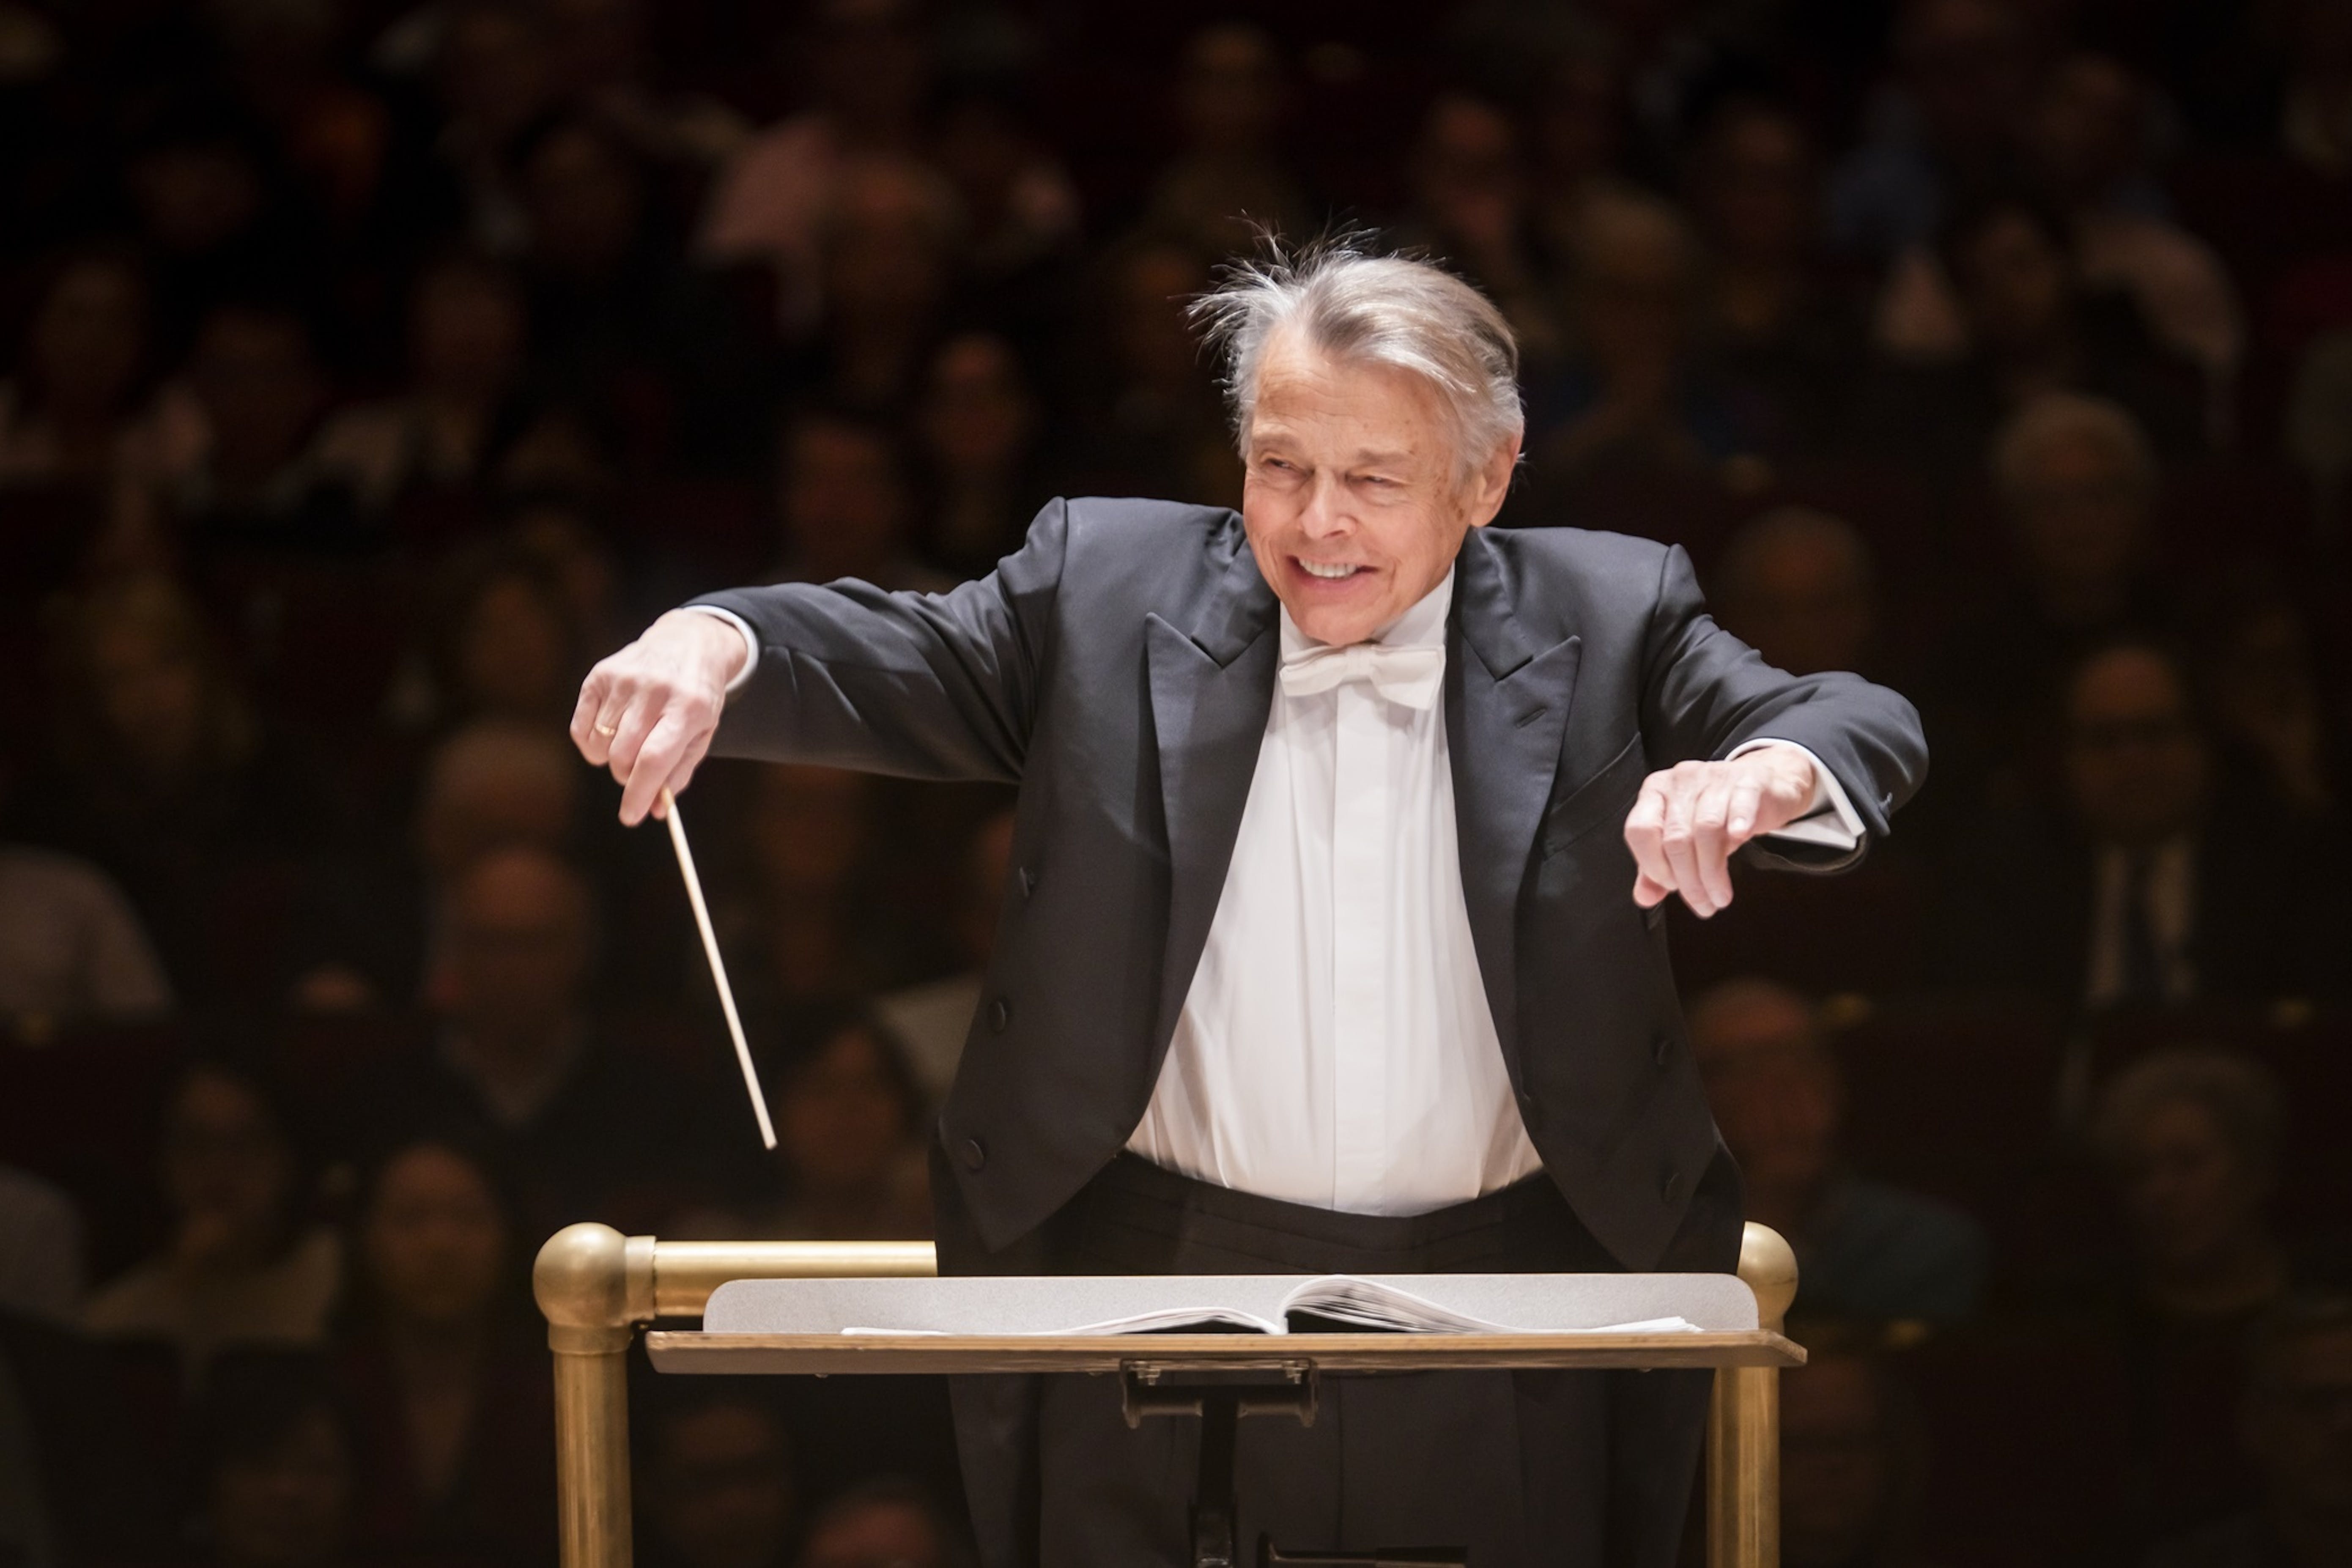 Mariss Jansons conducts the Bavarian Radio Symphony Orchestra